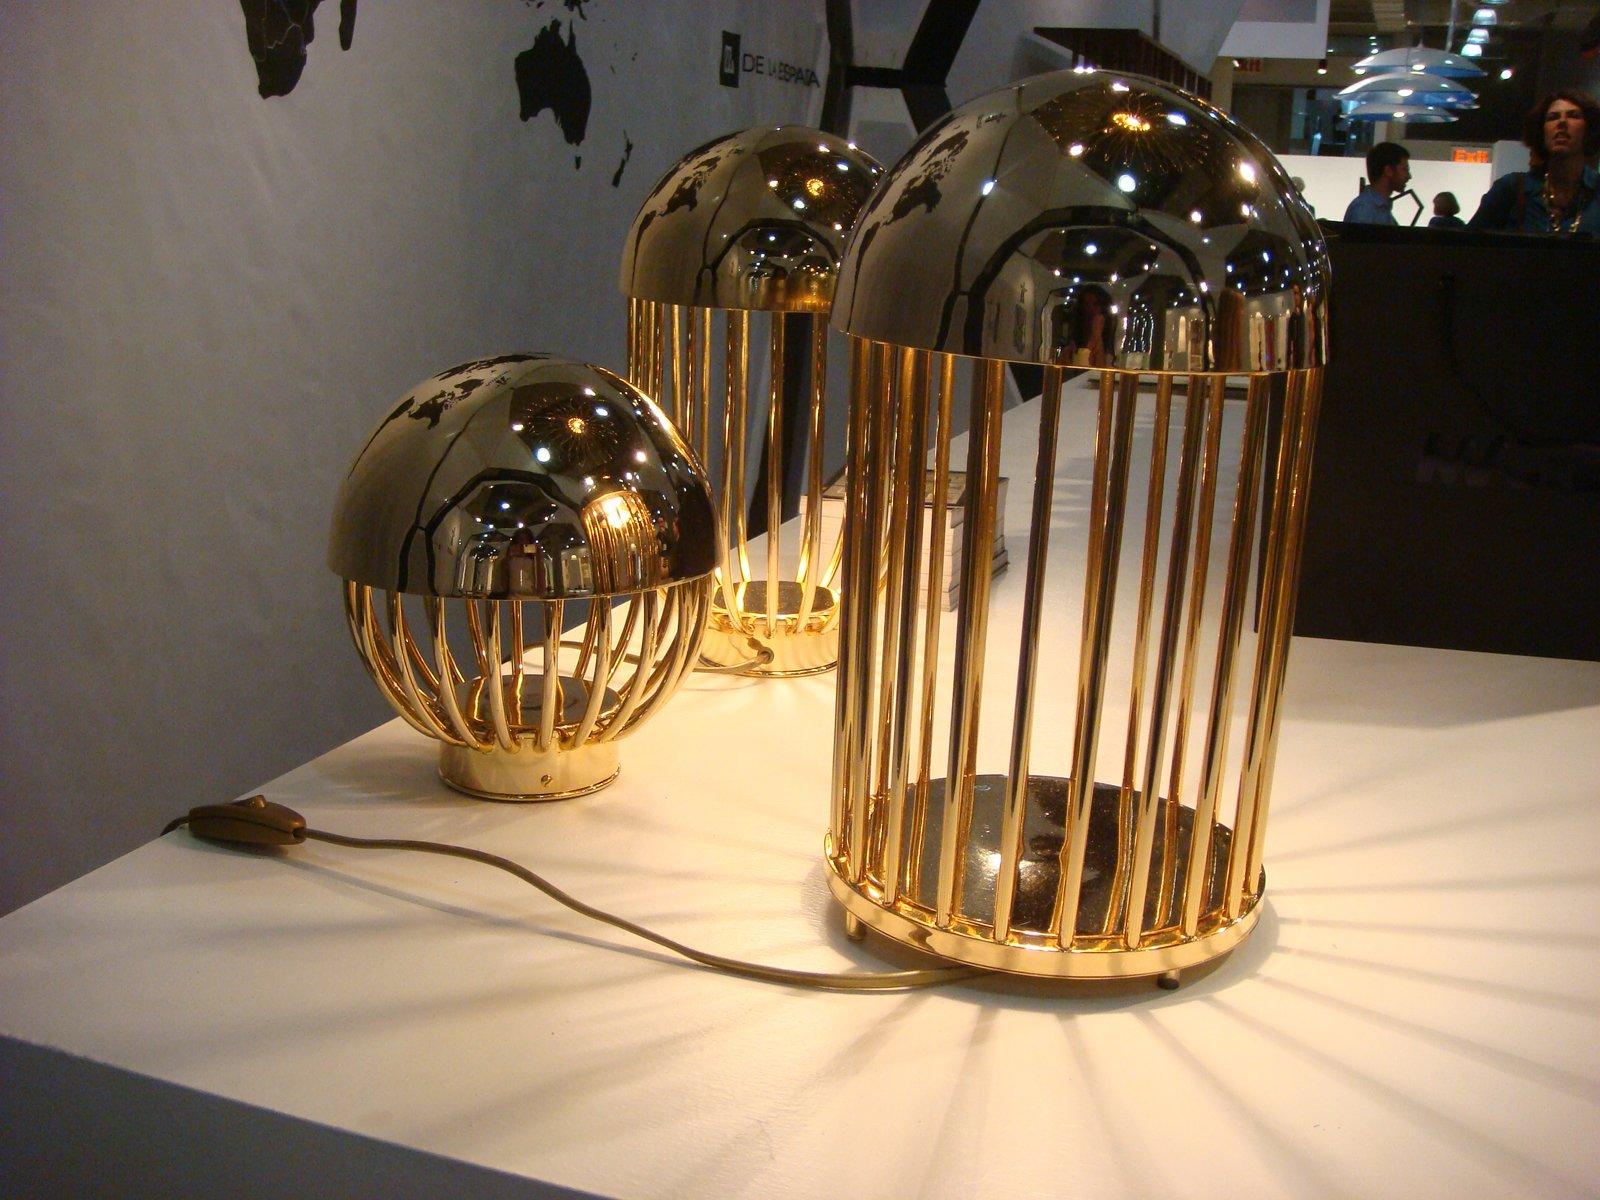 Autoban's new collection for De La Espada included these gold-plated Pill lamps. Though not brass, the objects are indicative of the warmed-toned metallics we saw throughout the fair. (Read more about the Turkish design duo here.)  ICFF 2012: Brass Tactics by Amanda Dameron